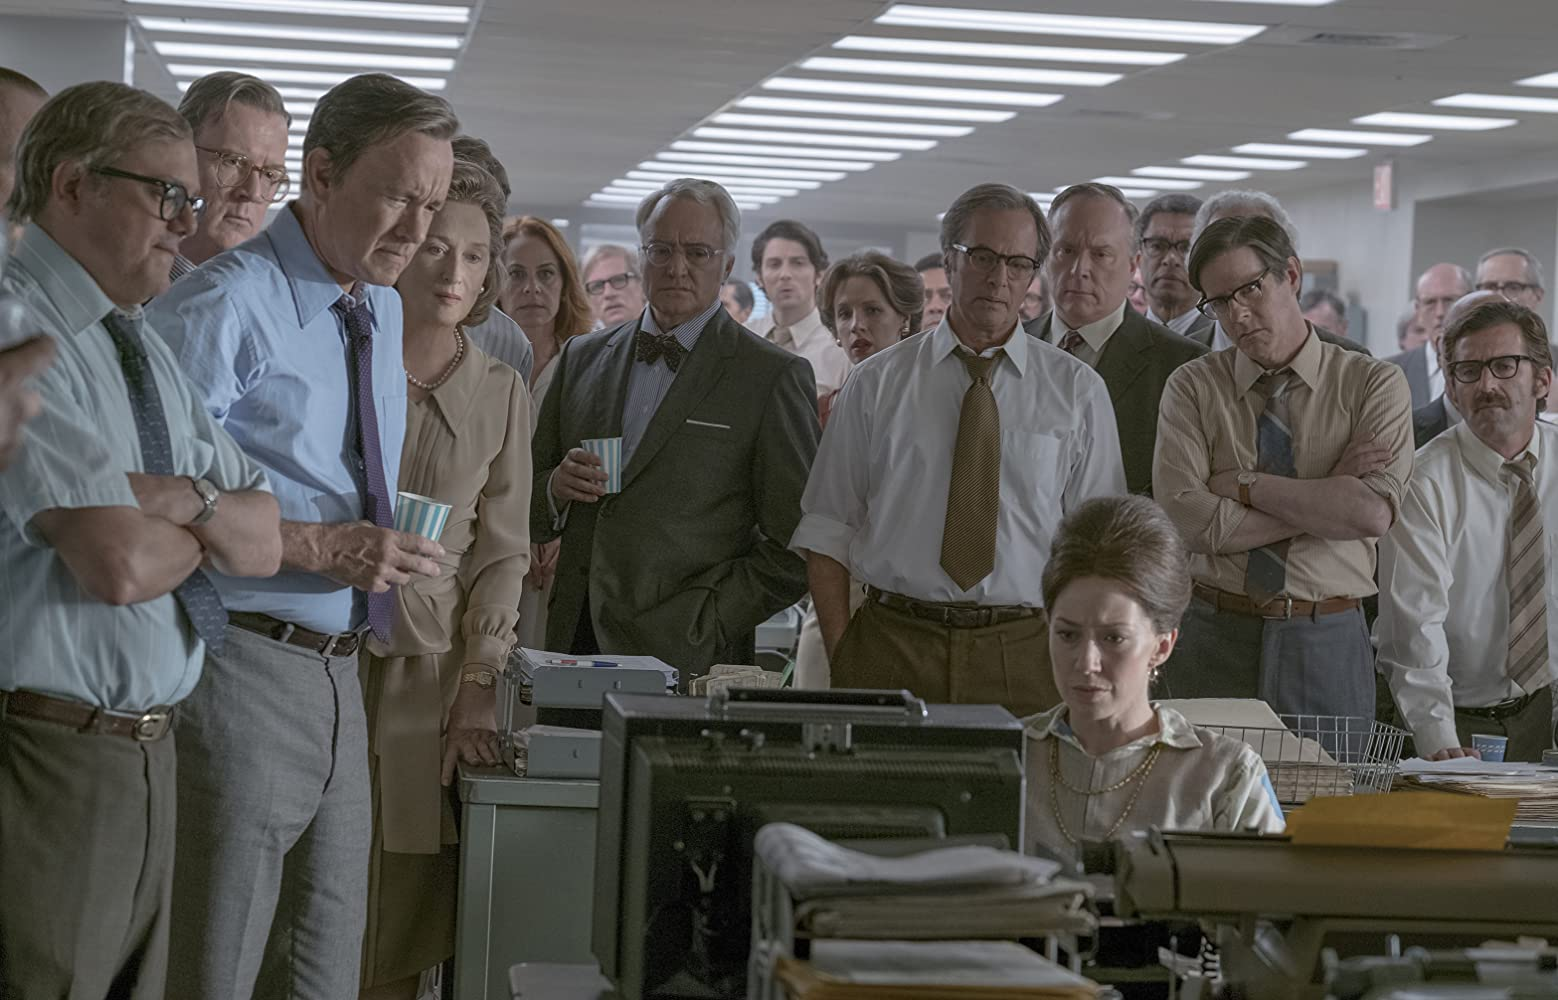 Tom Hanks, Meryl Streep, Philip Casnoff, David Cross, Tracy Letts, Bradley Whitford, Jessie Mueller, and Carrie Coon in The Post (2017)